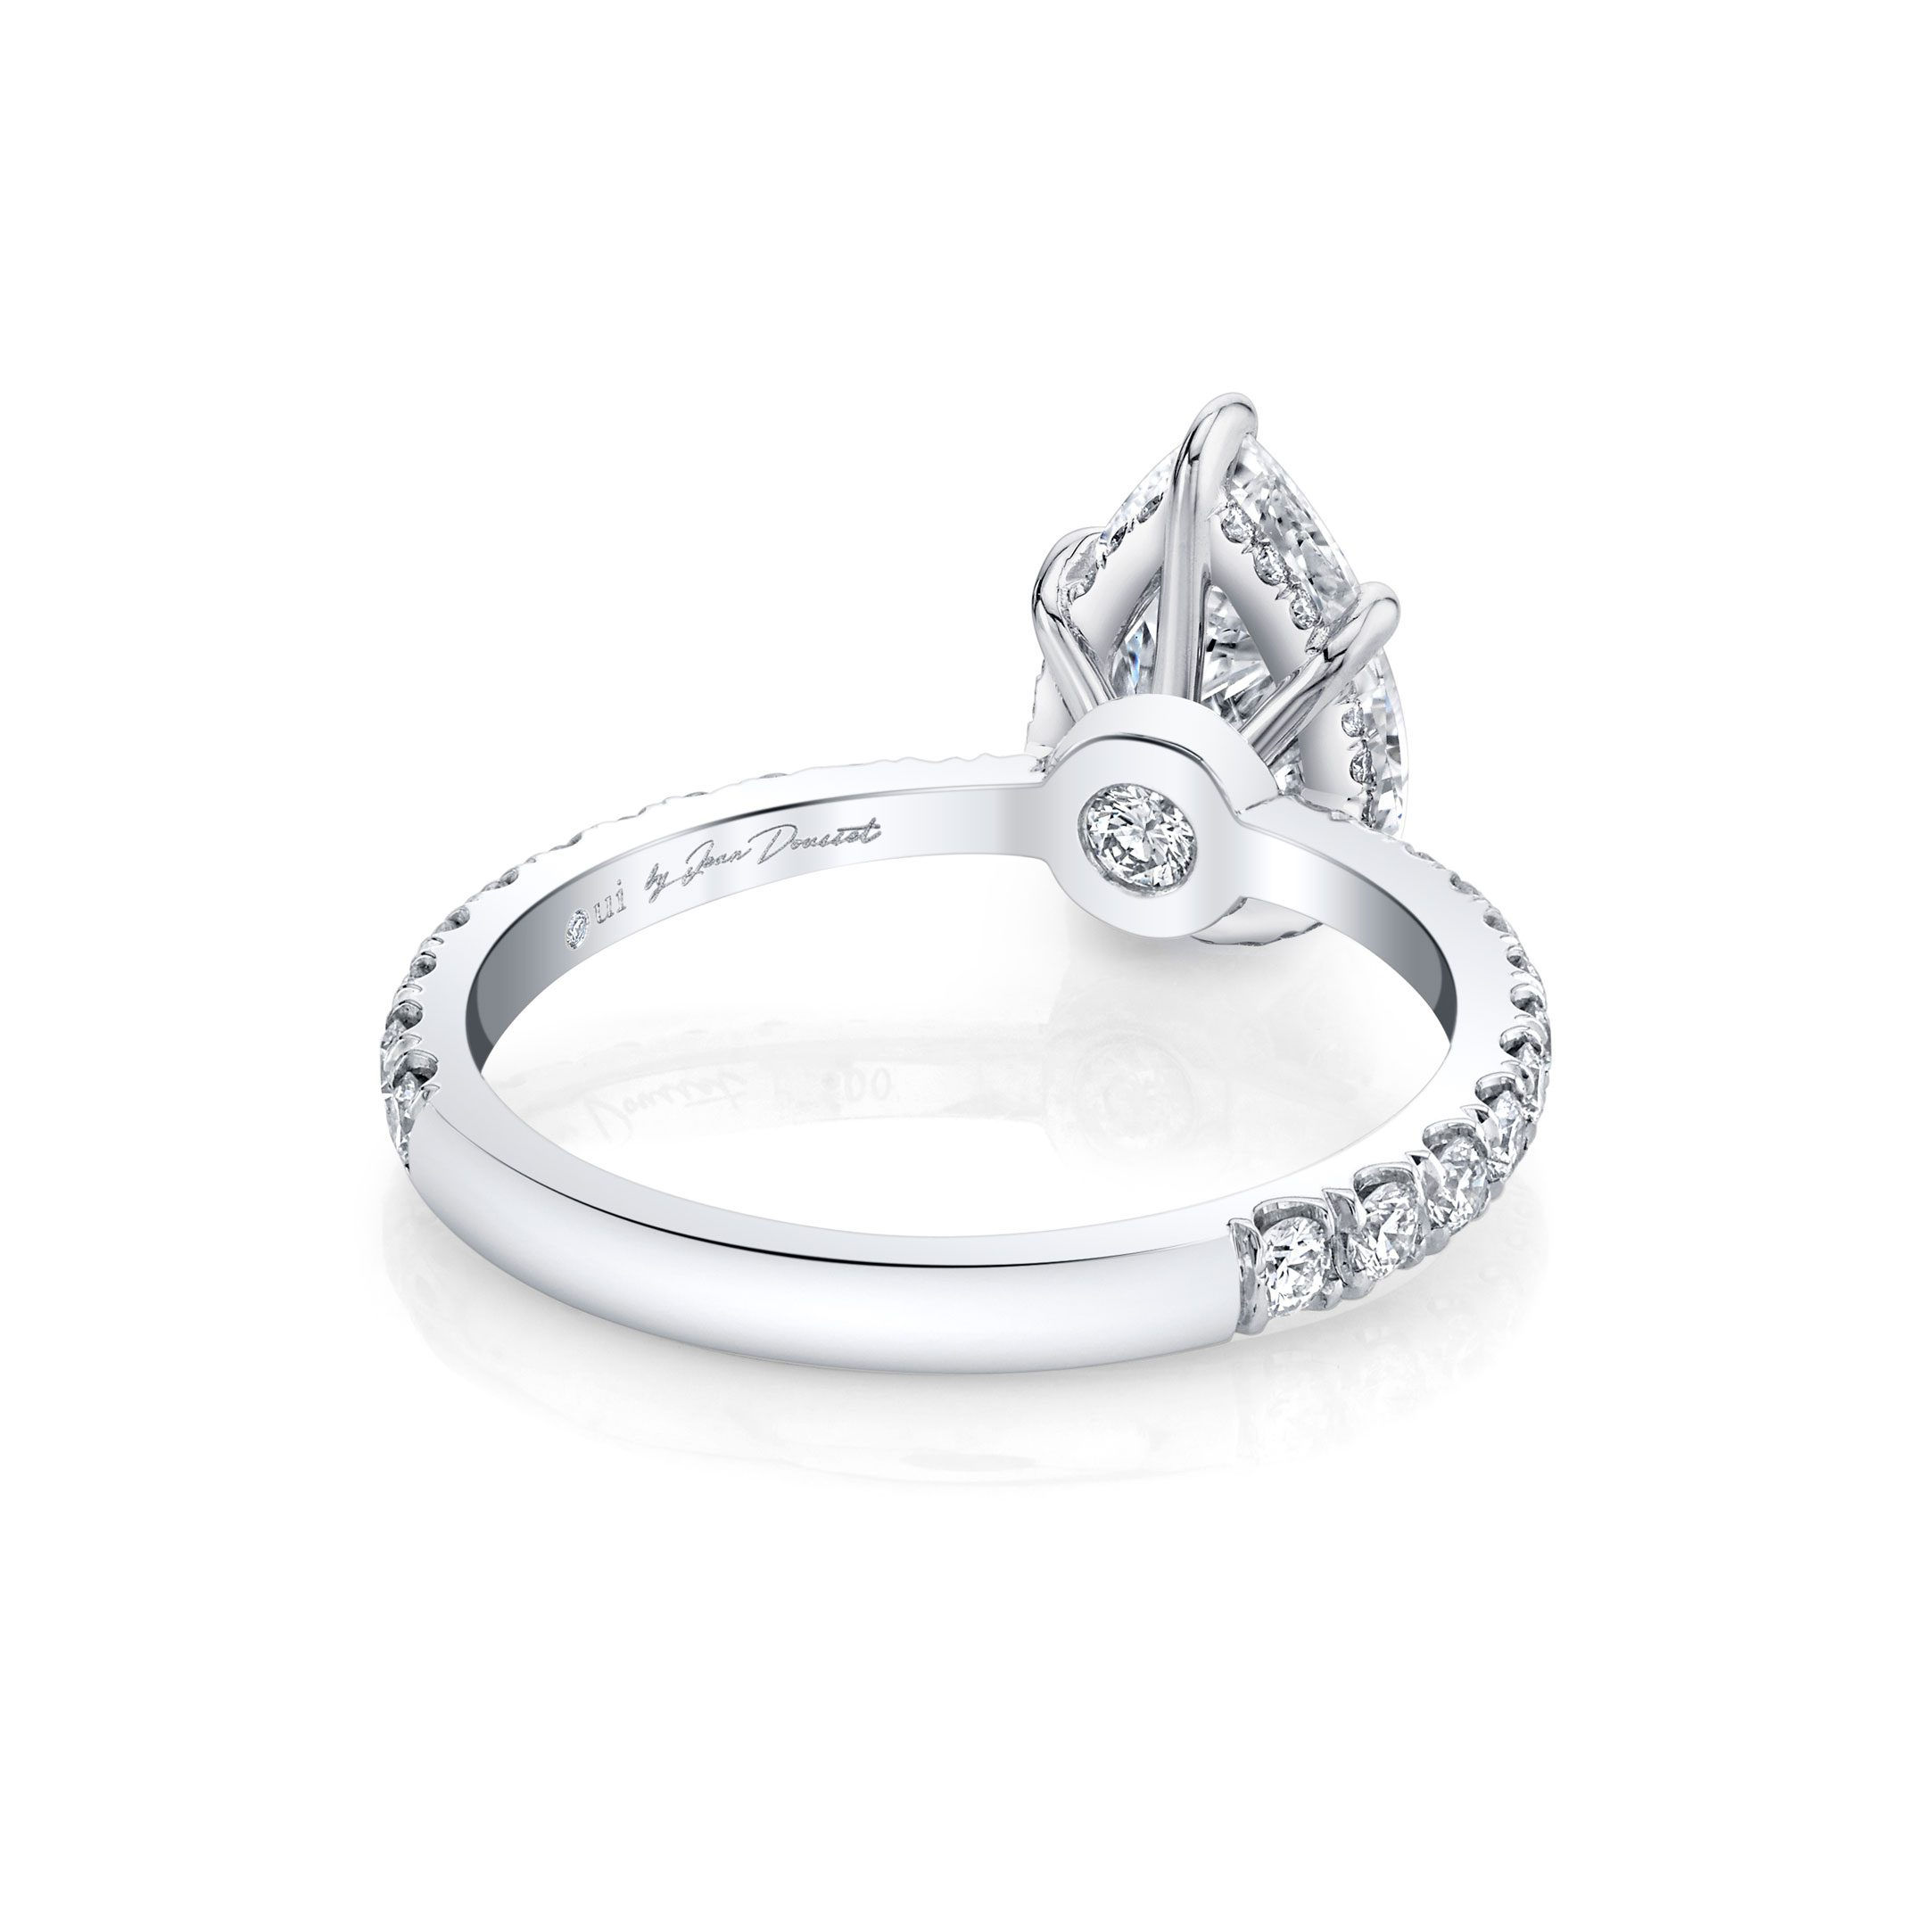 Eloise Solitaire Pear Cut Lab Grown Diamond Engagement Ring Side View with Pavé Band in 18k White Gold Ring Side View